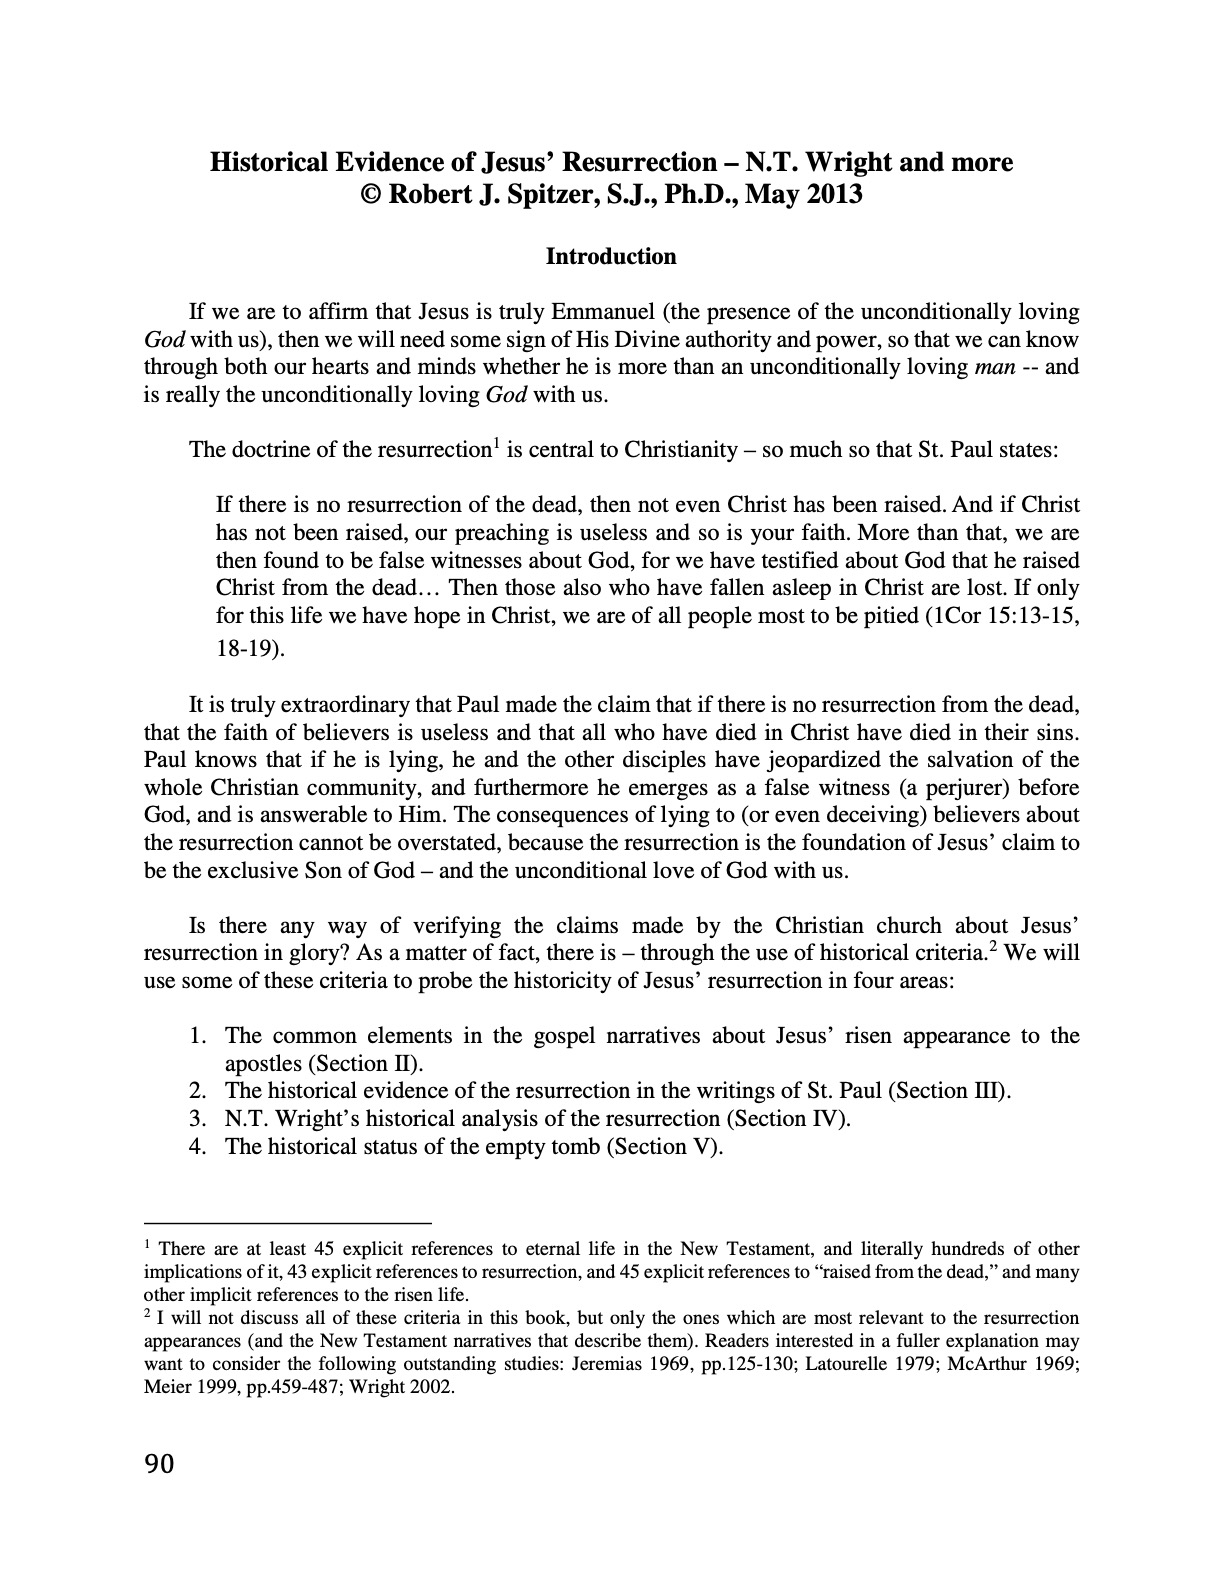 Evidence-of-Resurrection-NT-Wright-page-1